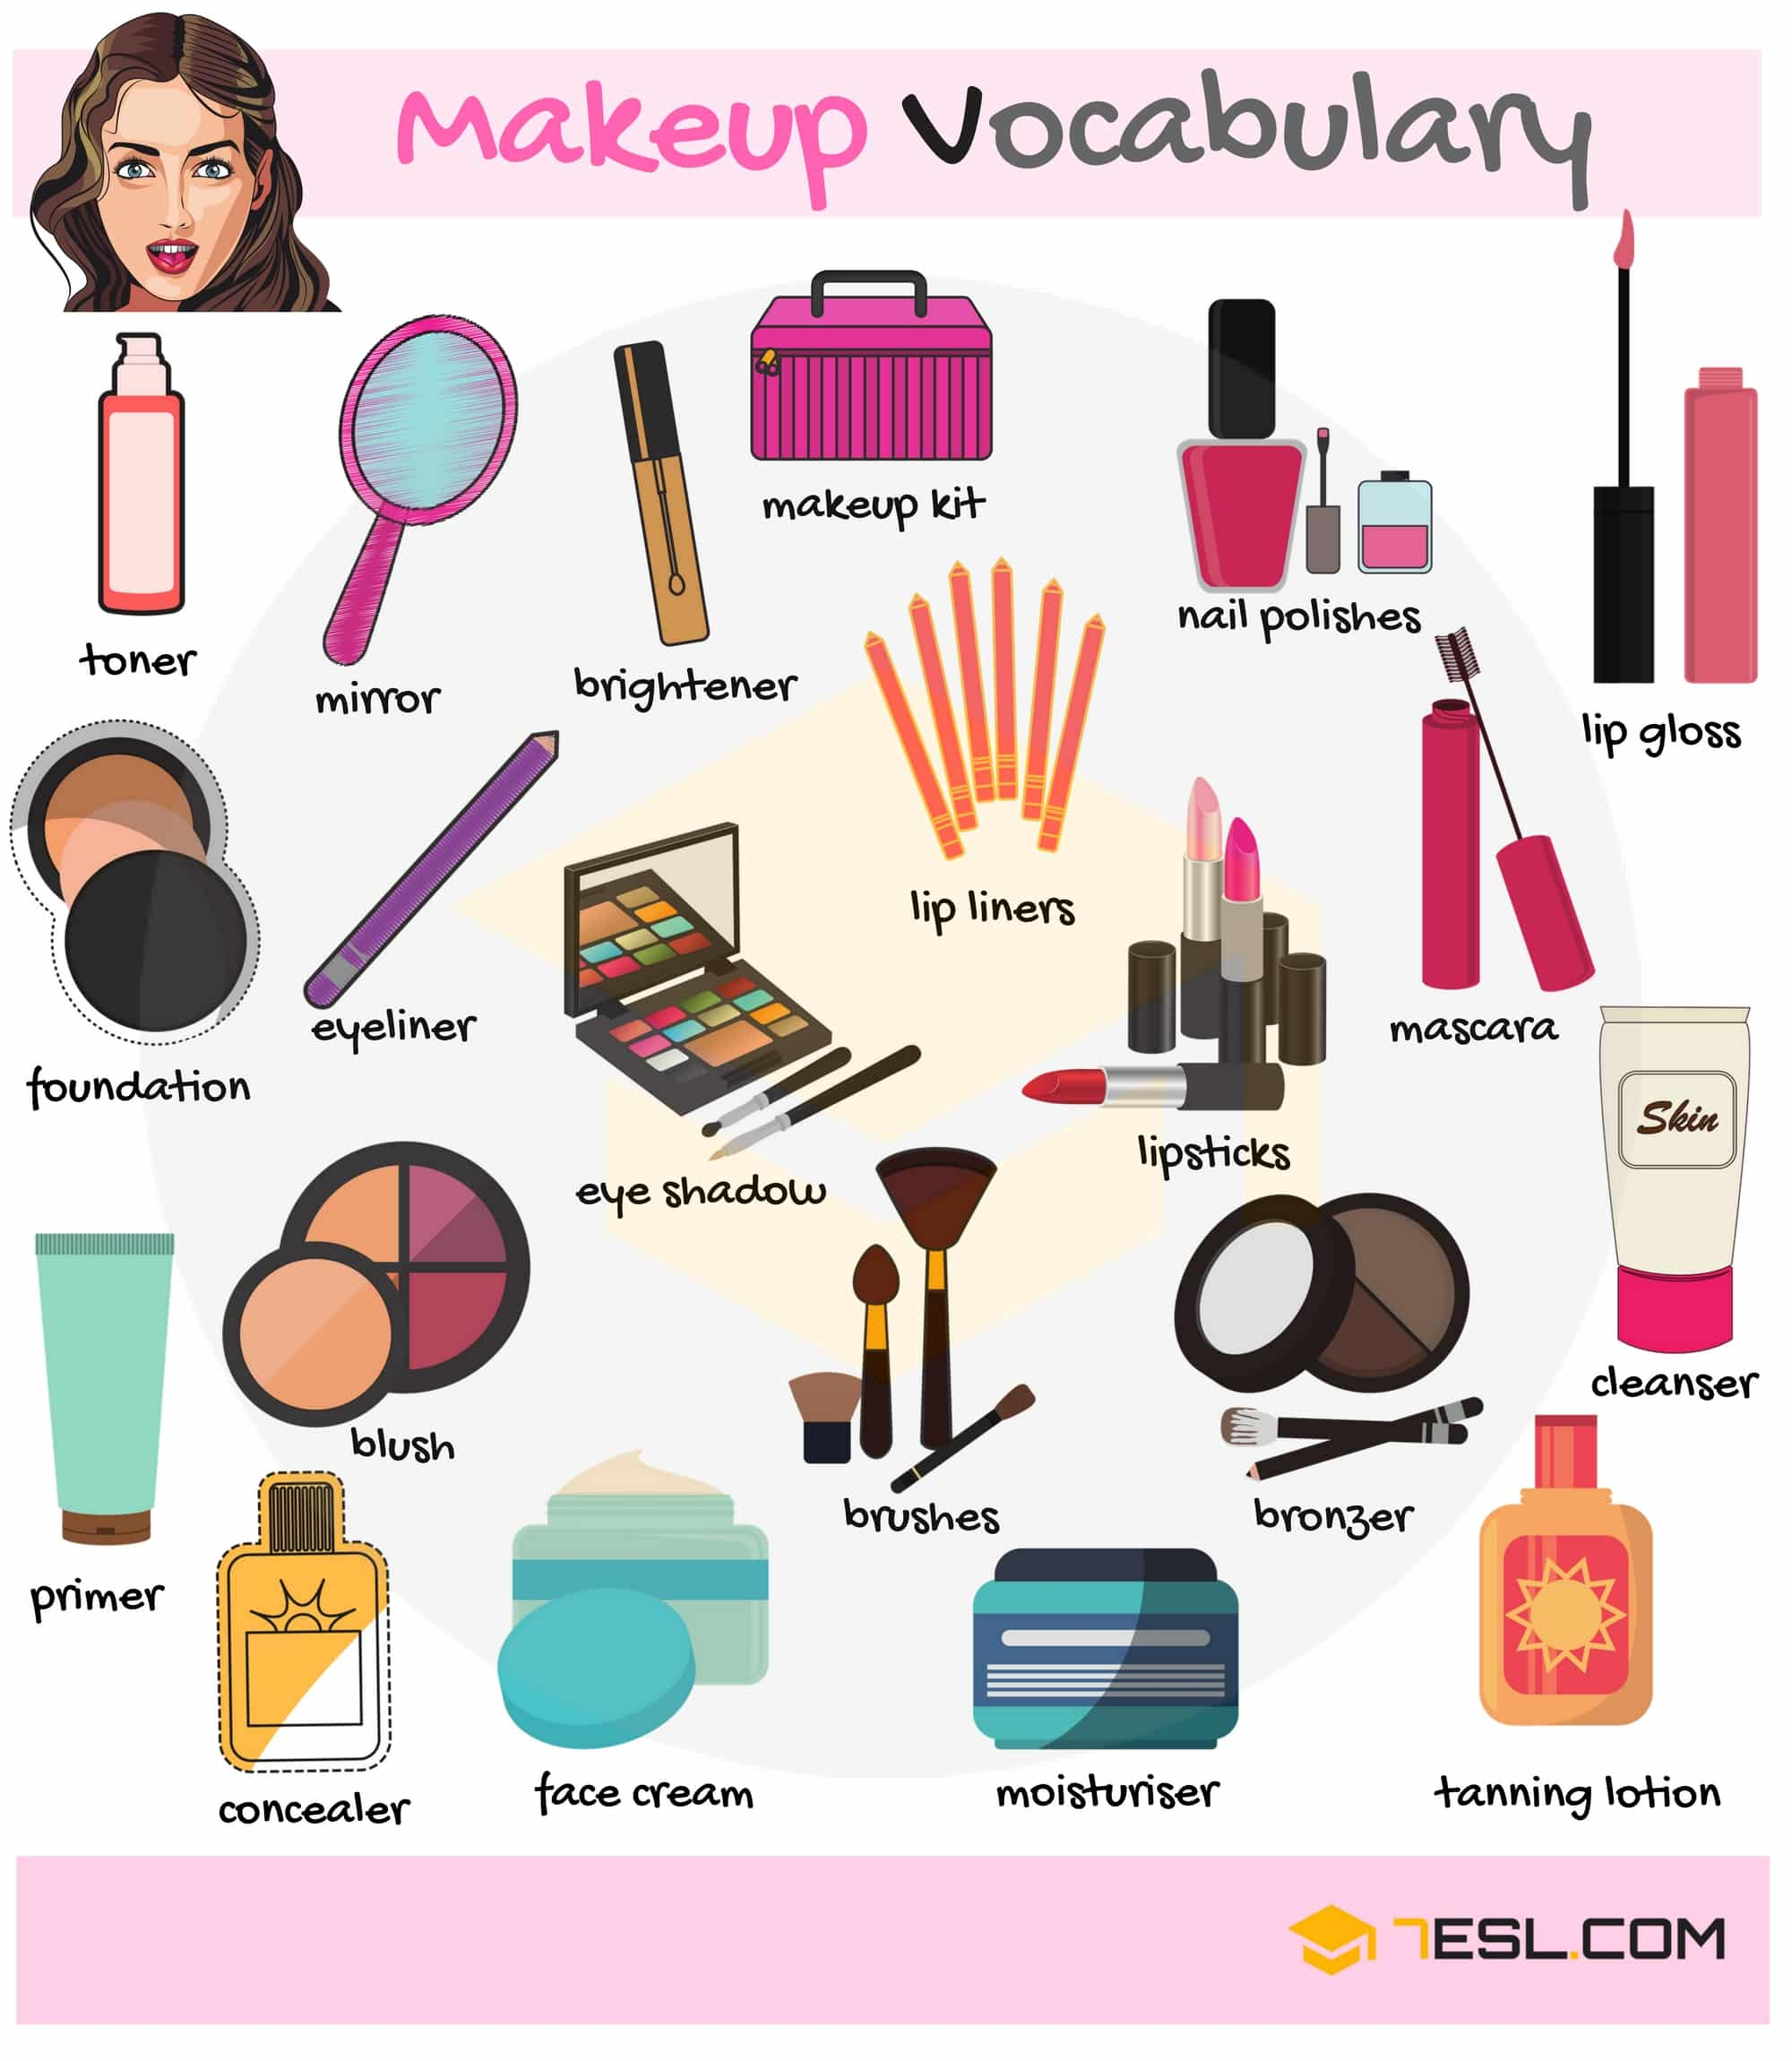 Makeup and Cosmetics Vocabulary